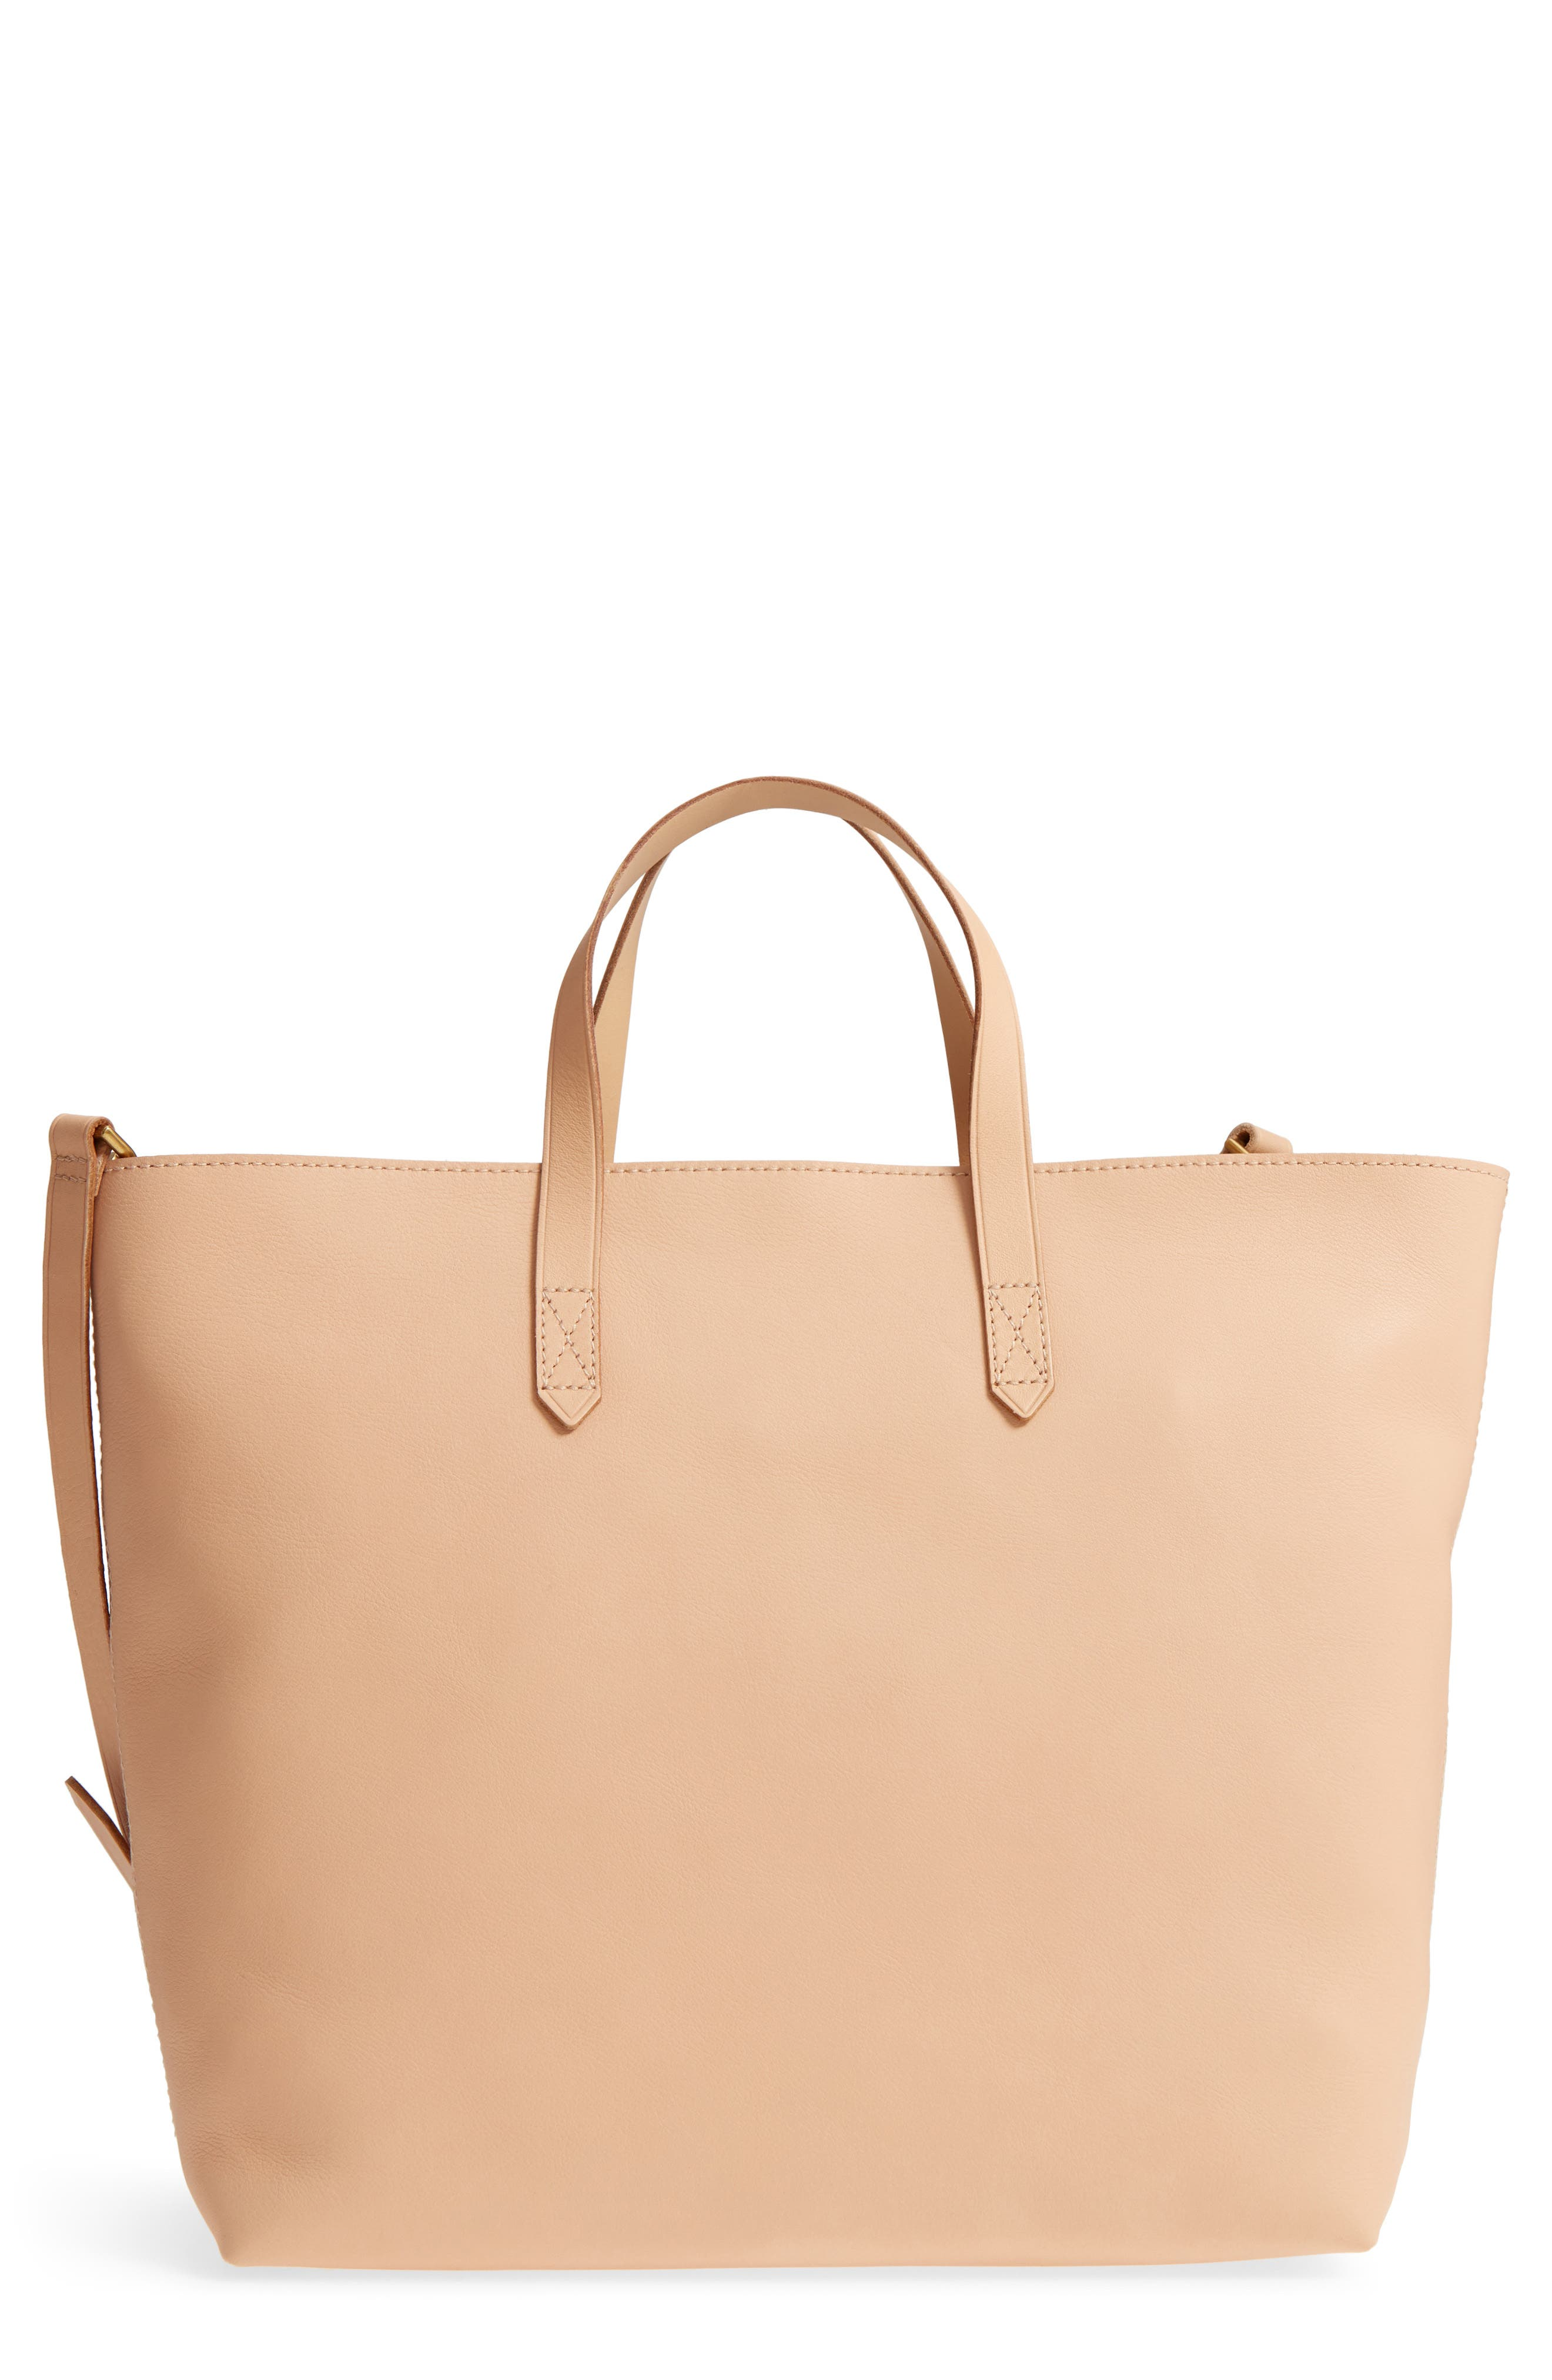 Madewell Tote Bags For Women Leather Coated Canvas Neoprene Nordstrom